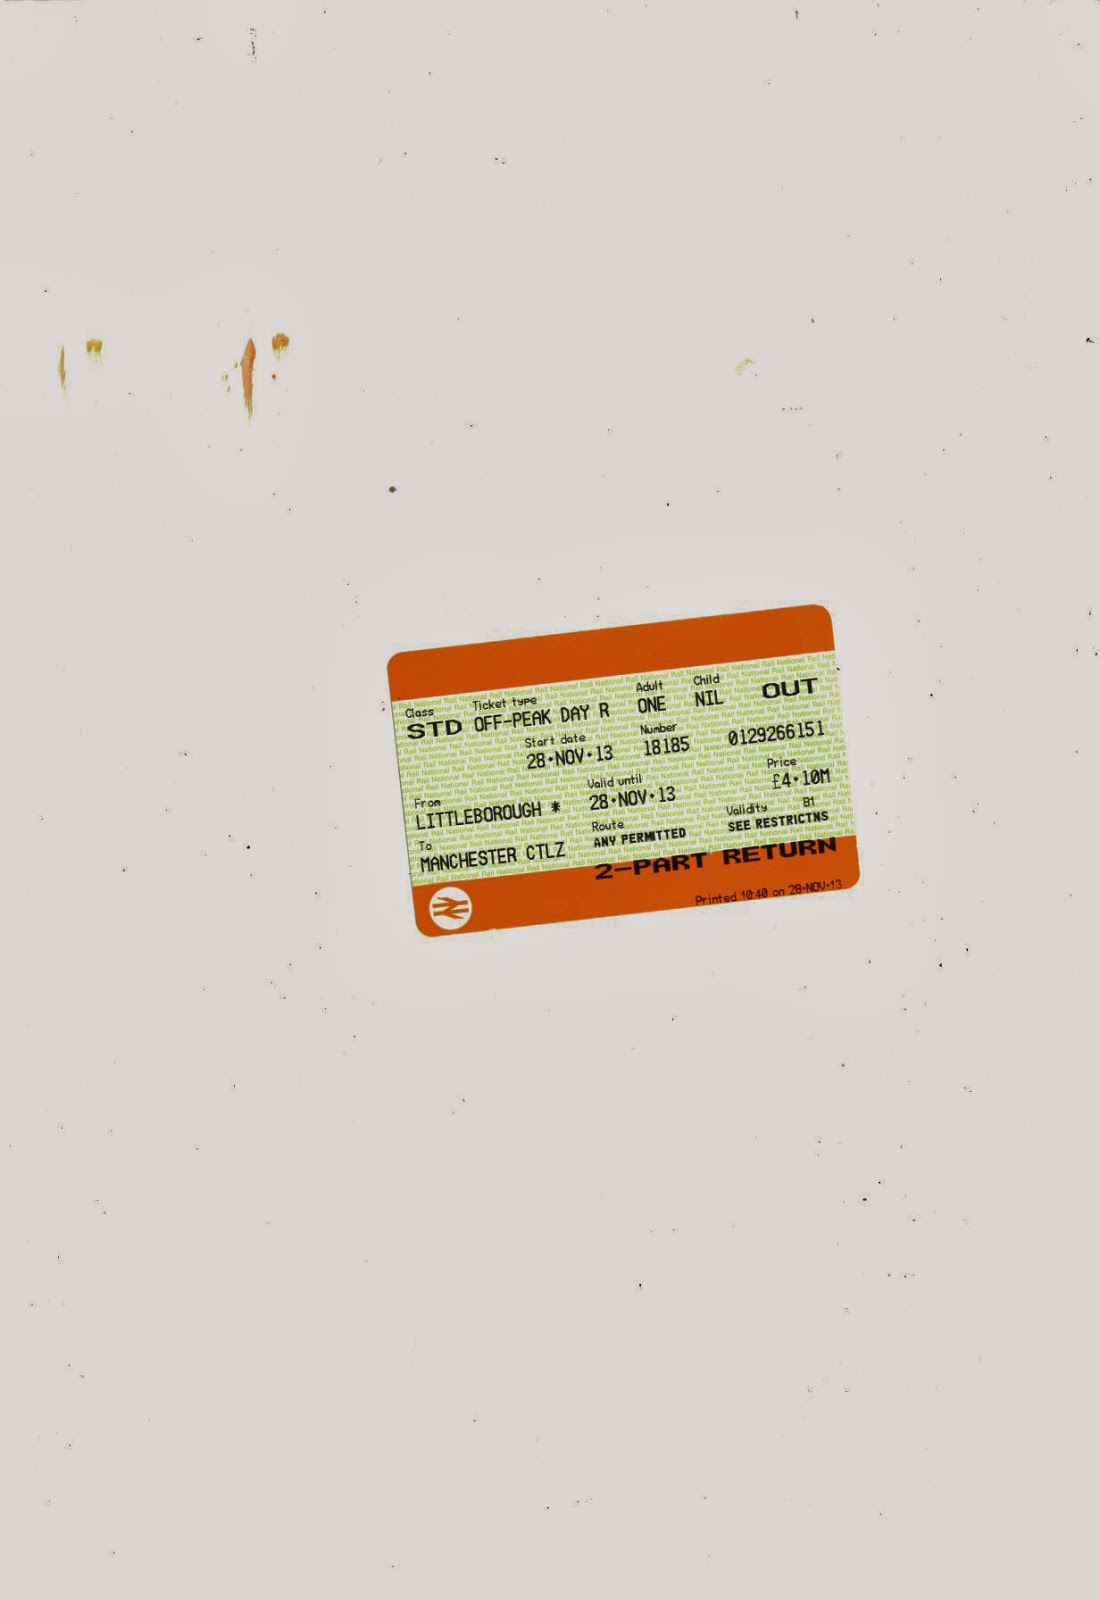 Details, exploring city, close up photography, manchester, urbex, ephemera, urban narrative, train ticket